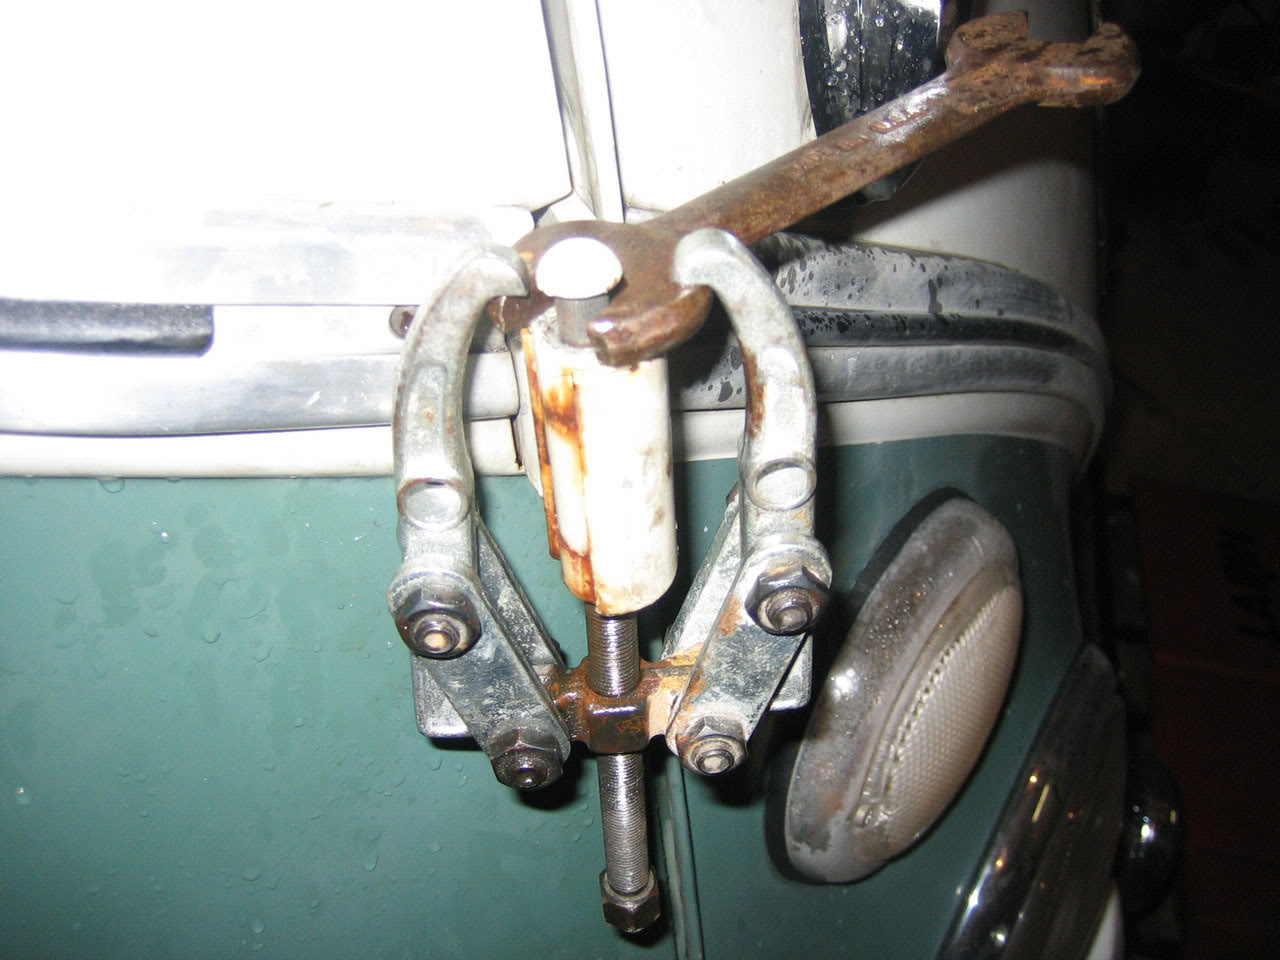 Hinge Pin Removal Tools And Ways To Aircooled Vw South